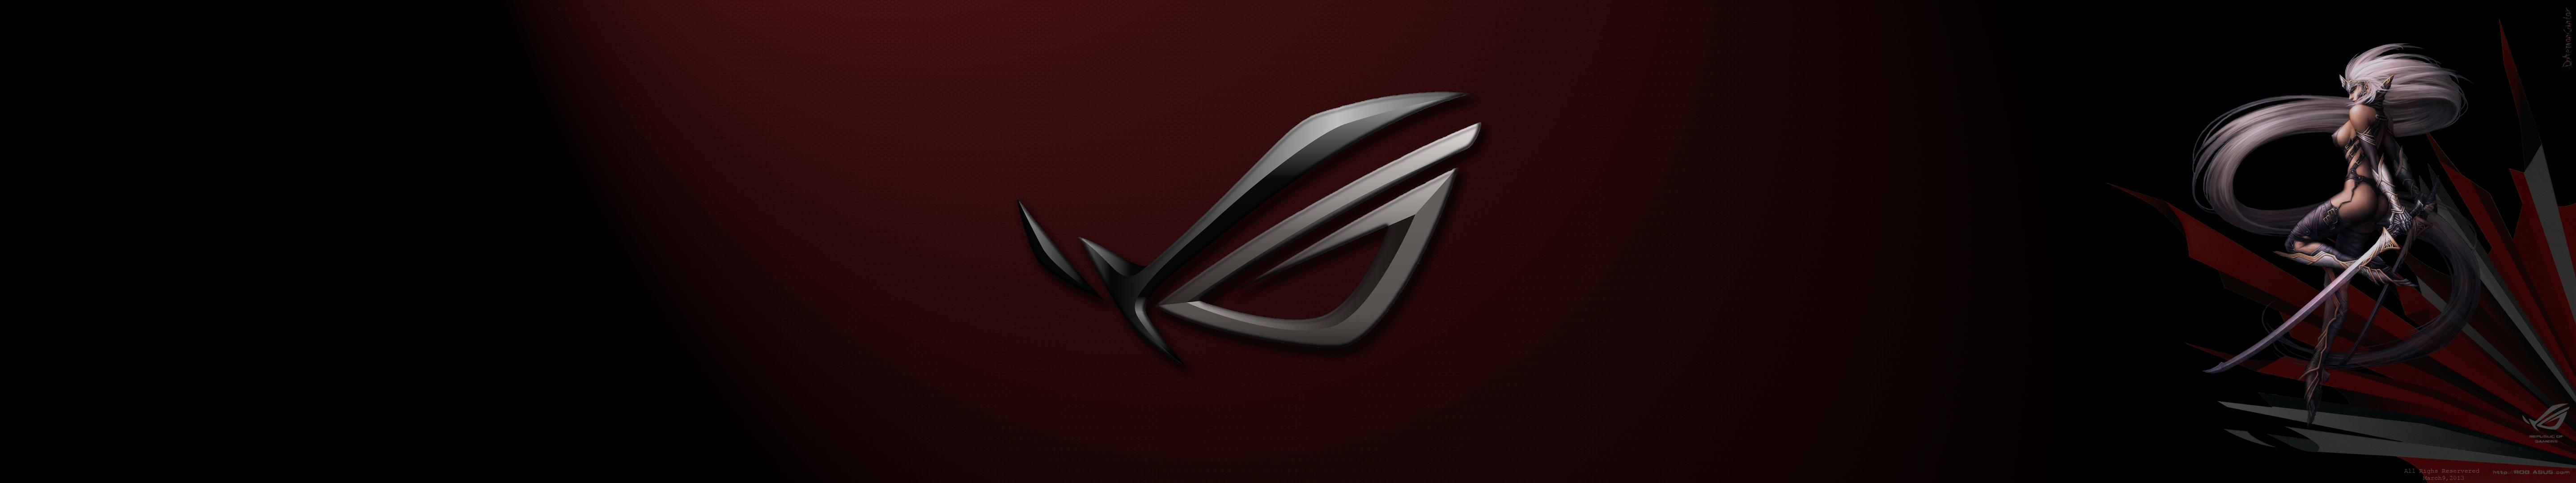 rog eyefinity wallpaper